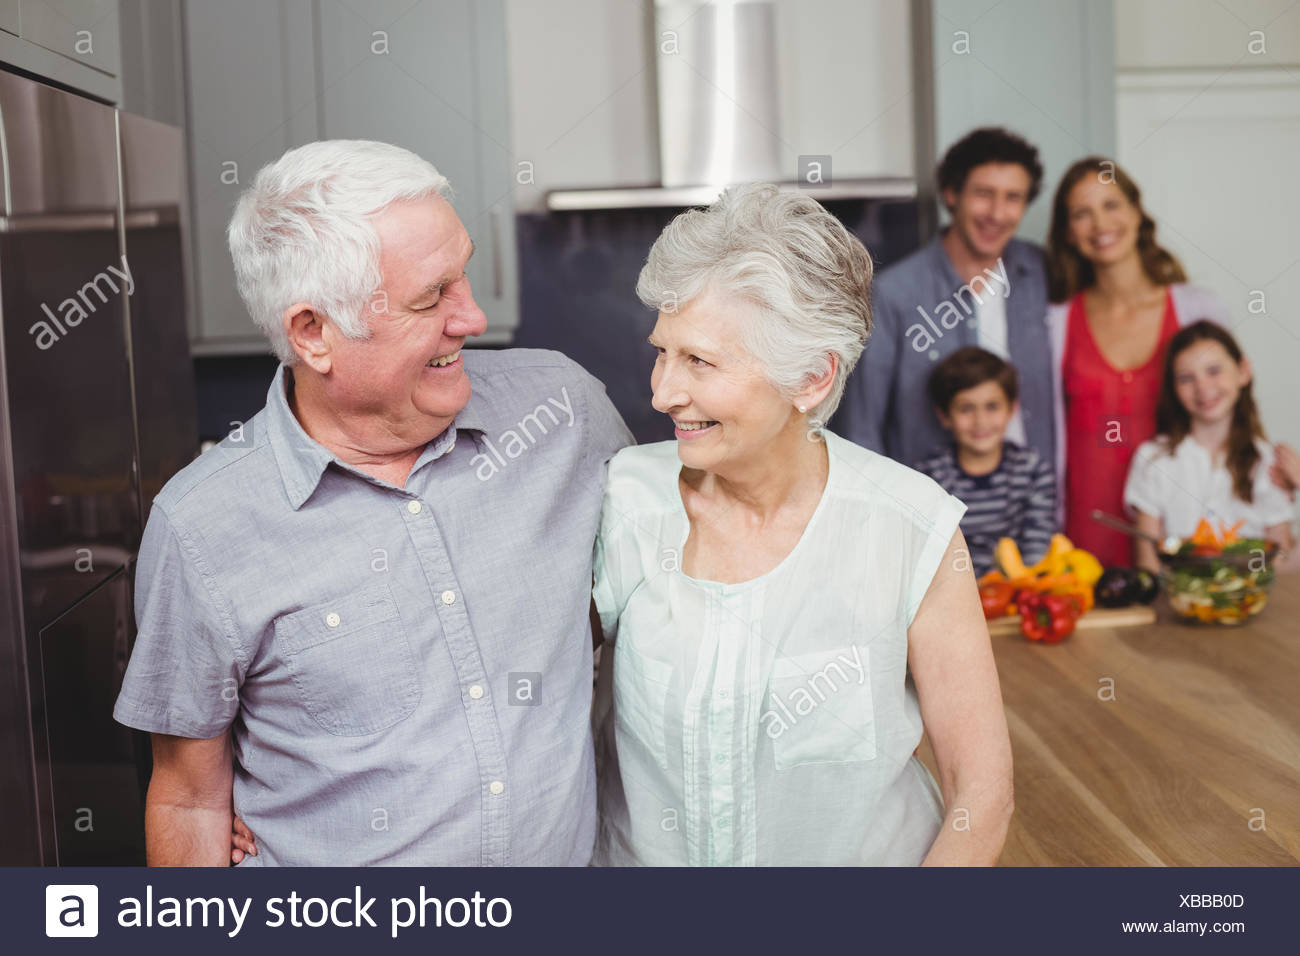 Happy grandparents with family in kitchen - Stock Image